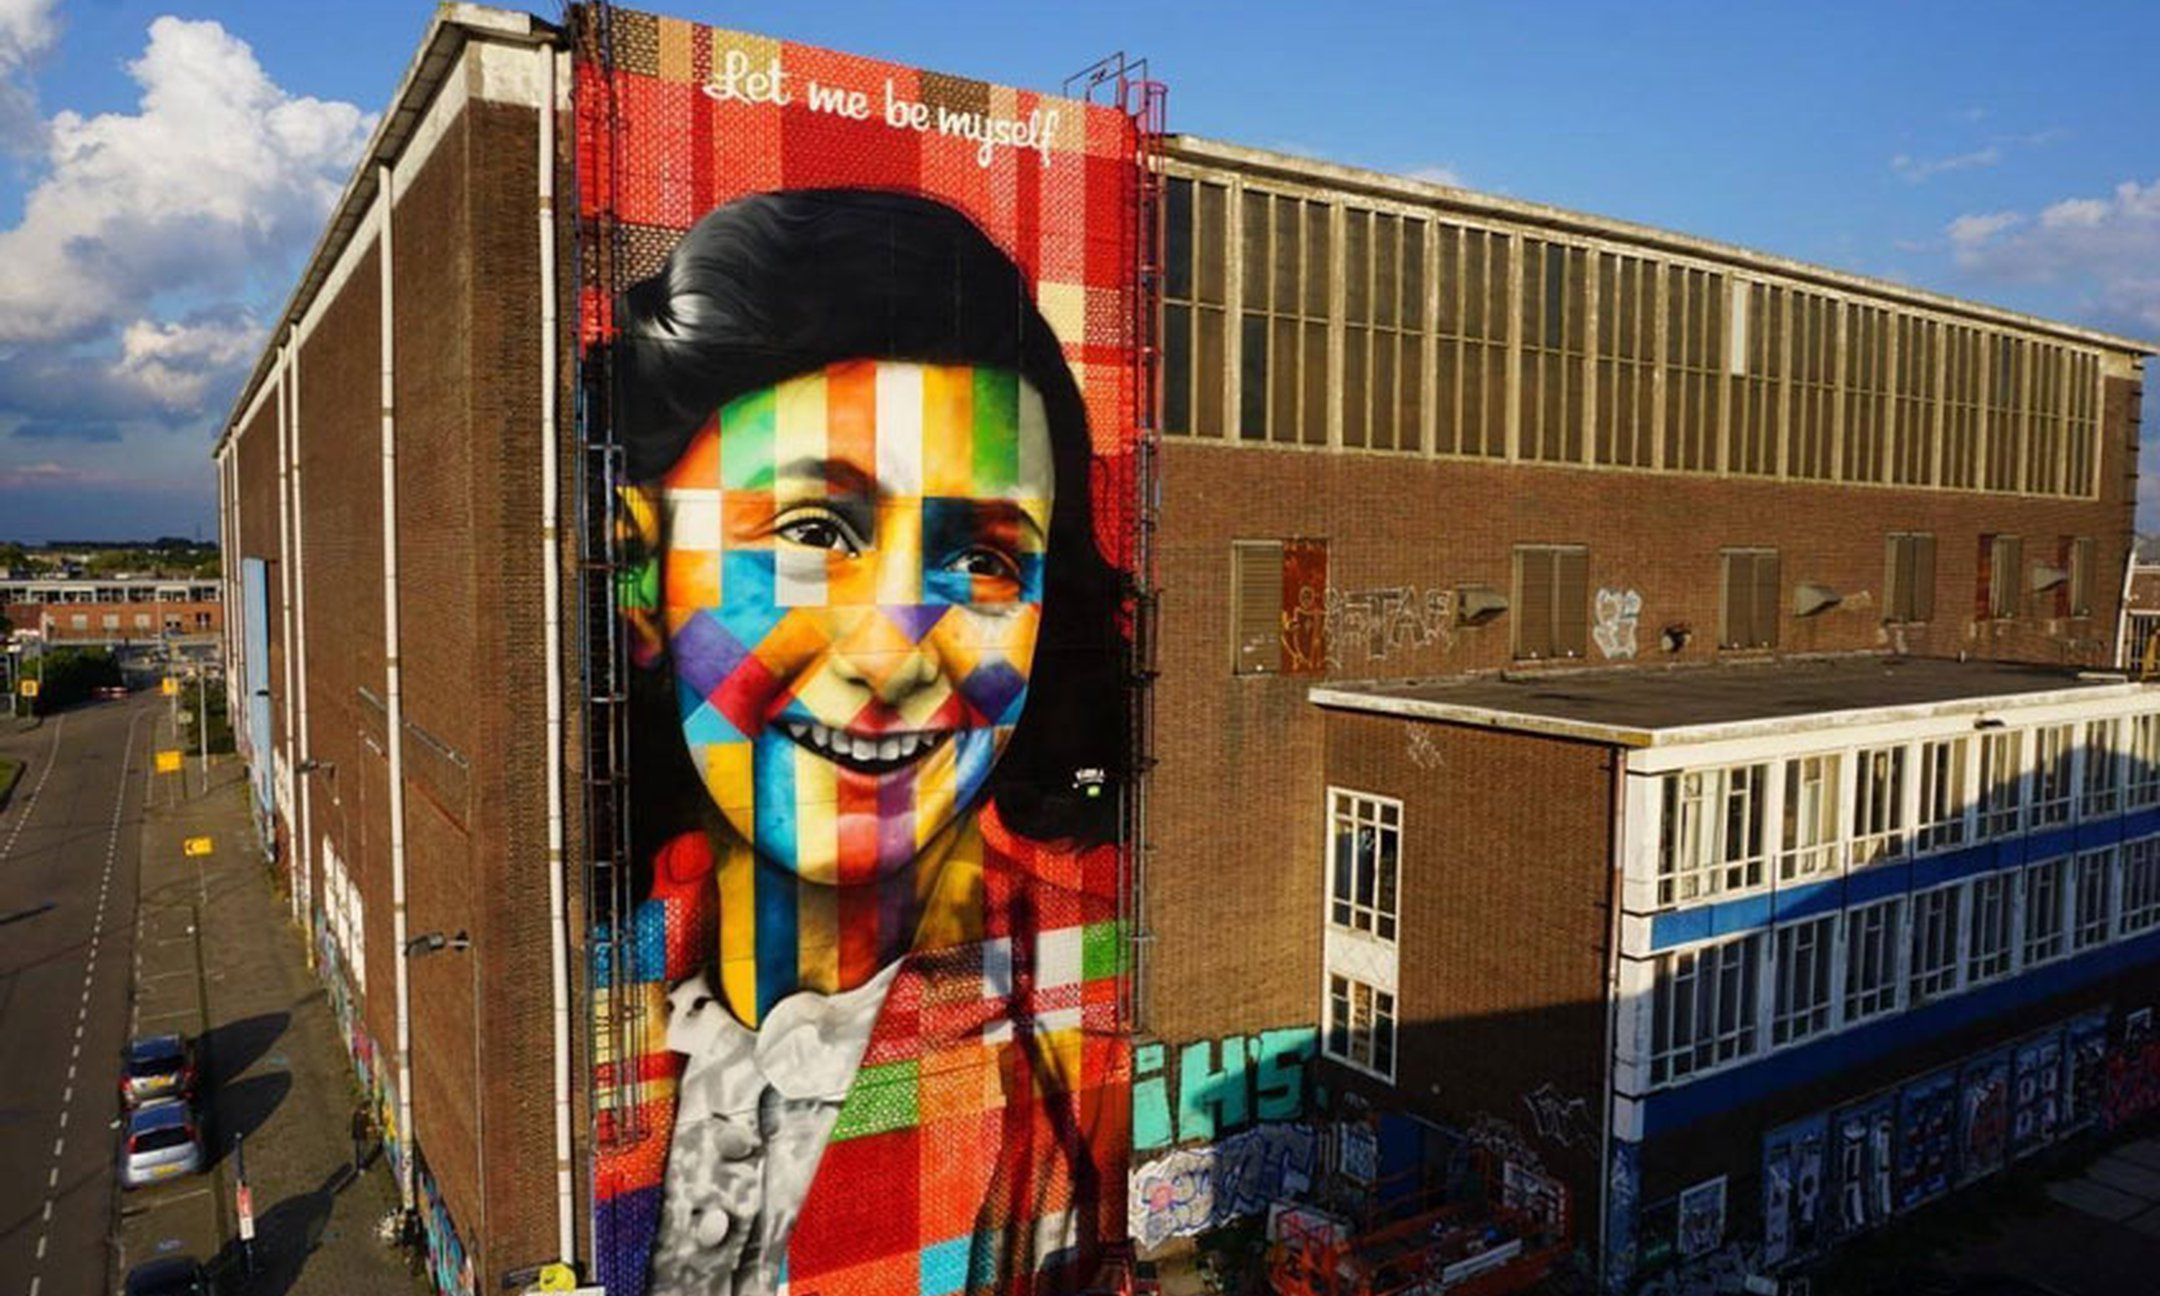 Brazilian artist Eduardo Kobra made a gigantic graffiti portrait of Anne Frank at the NSDM shipyard in Amsterdam.